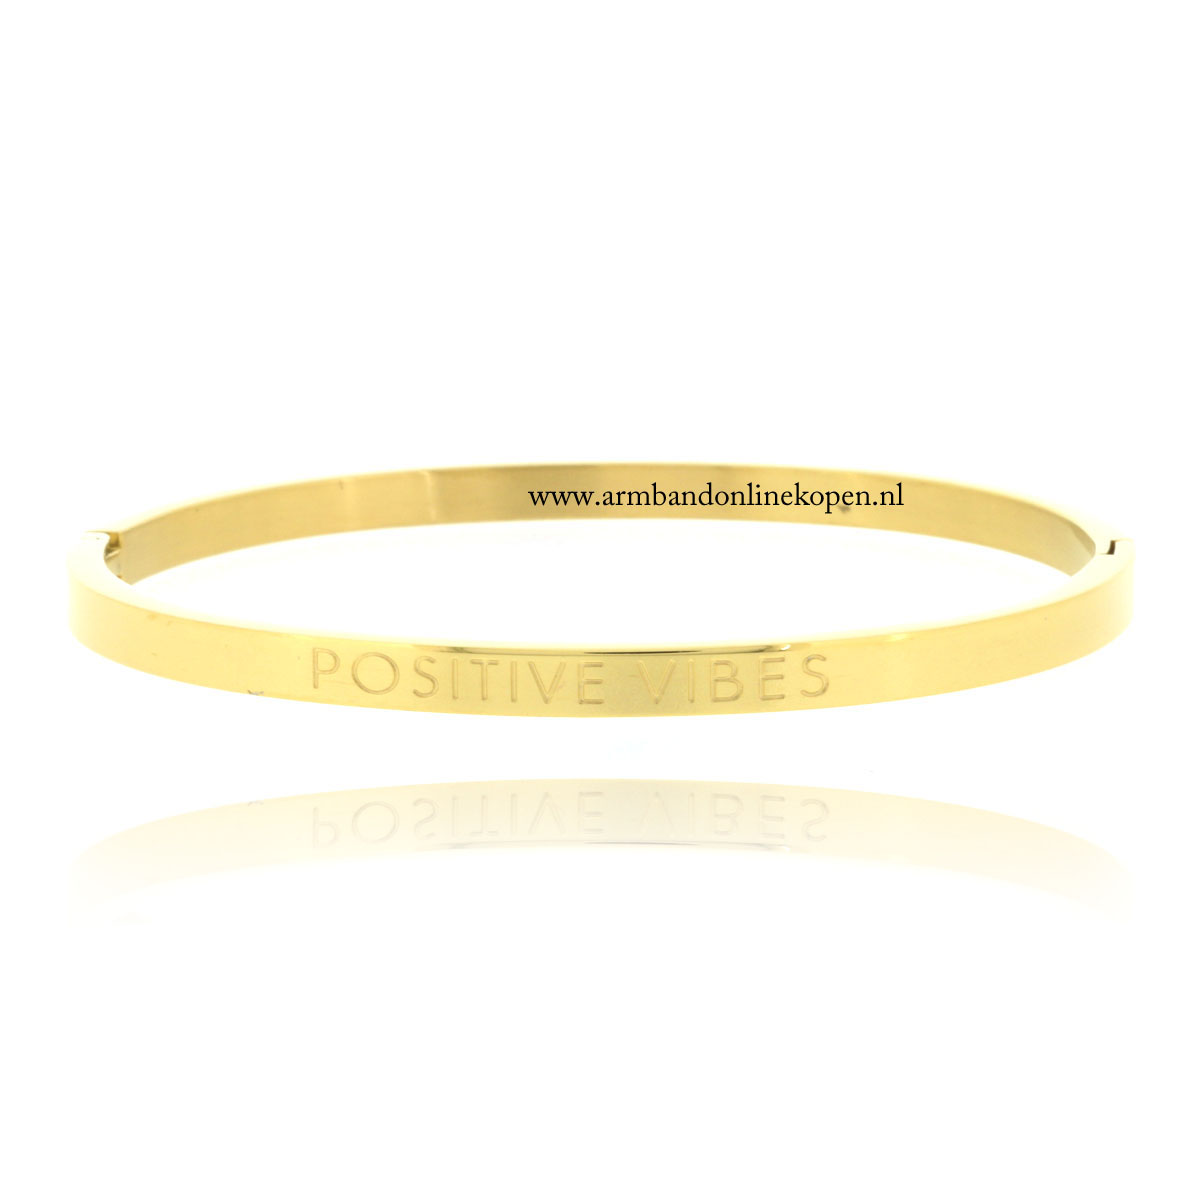 quote rvs armband positive vibes goud